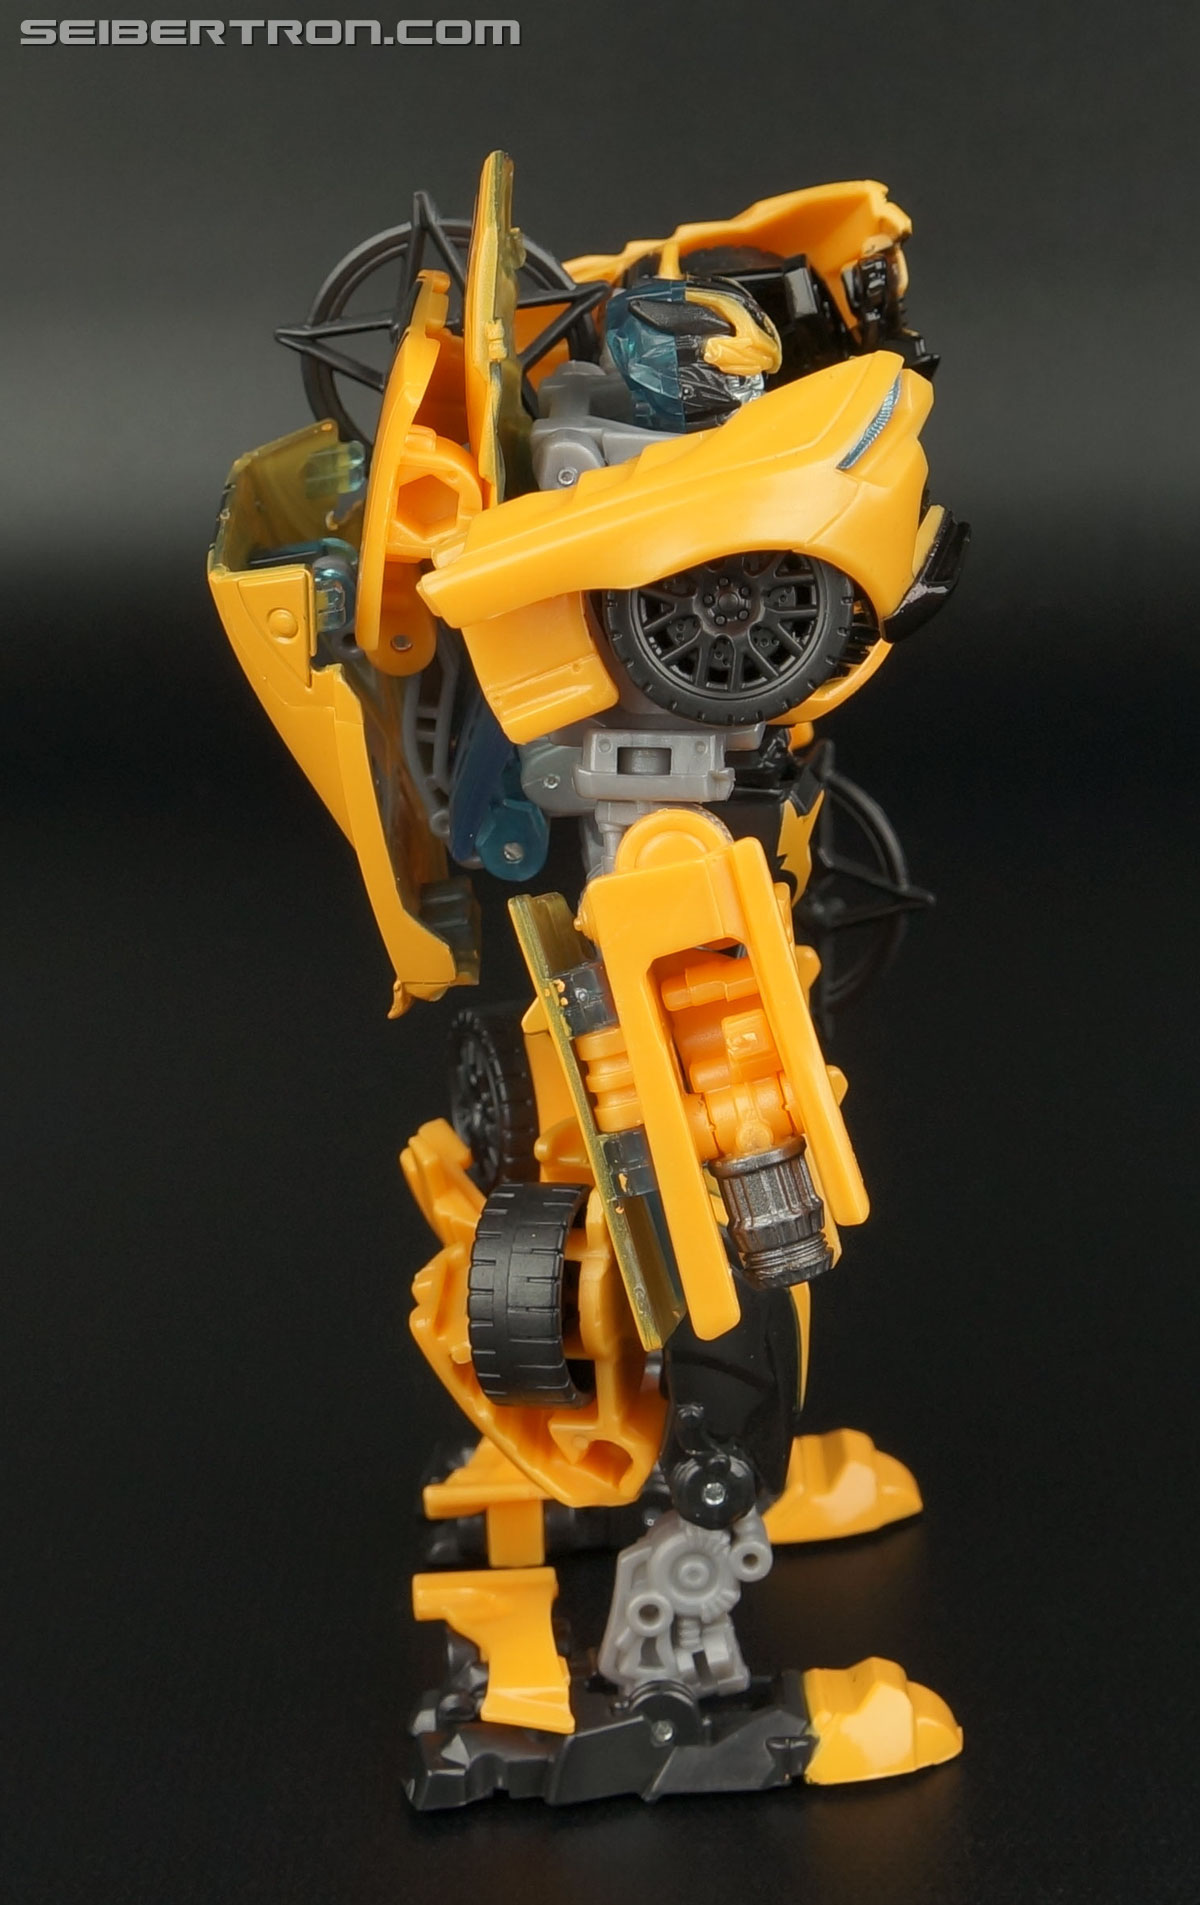 Transformers Age of Extinction: Generations Bumblebee (Image #69 of 190)